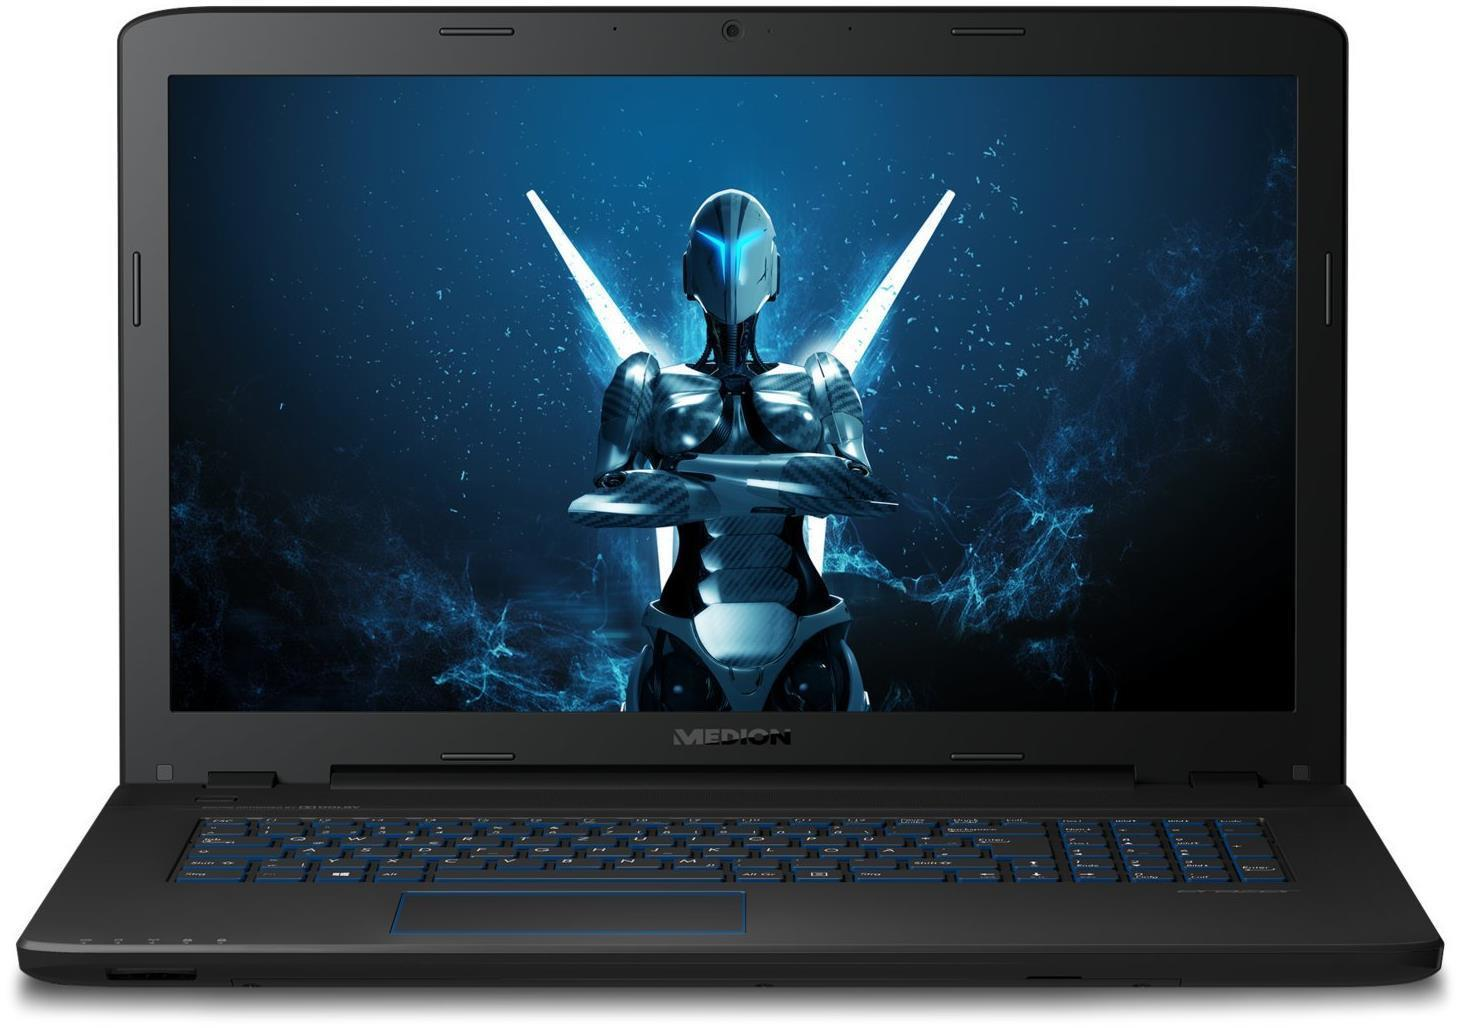 Medion Erazer P7651 Gaming Laptop